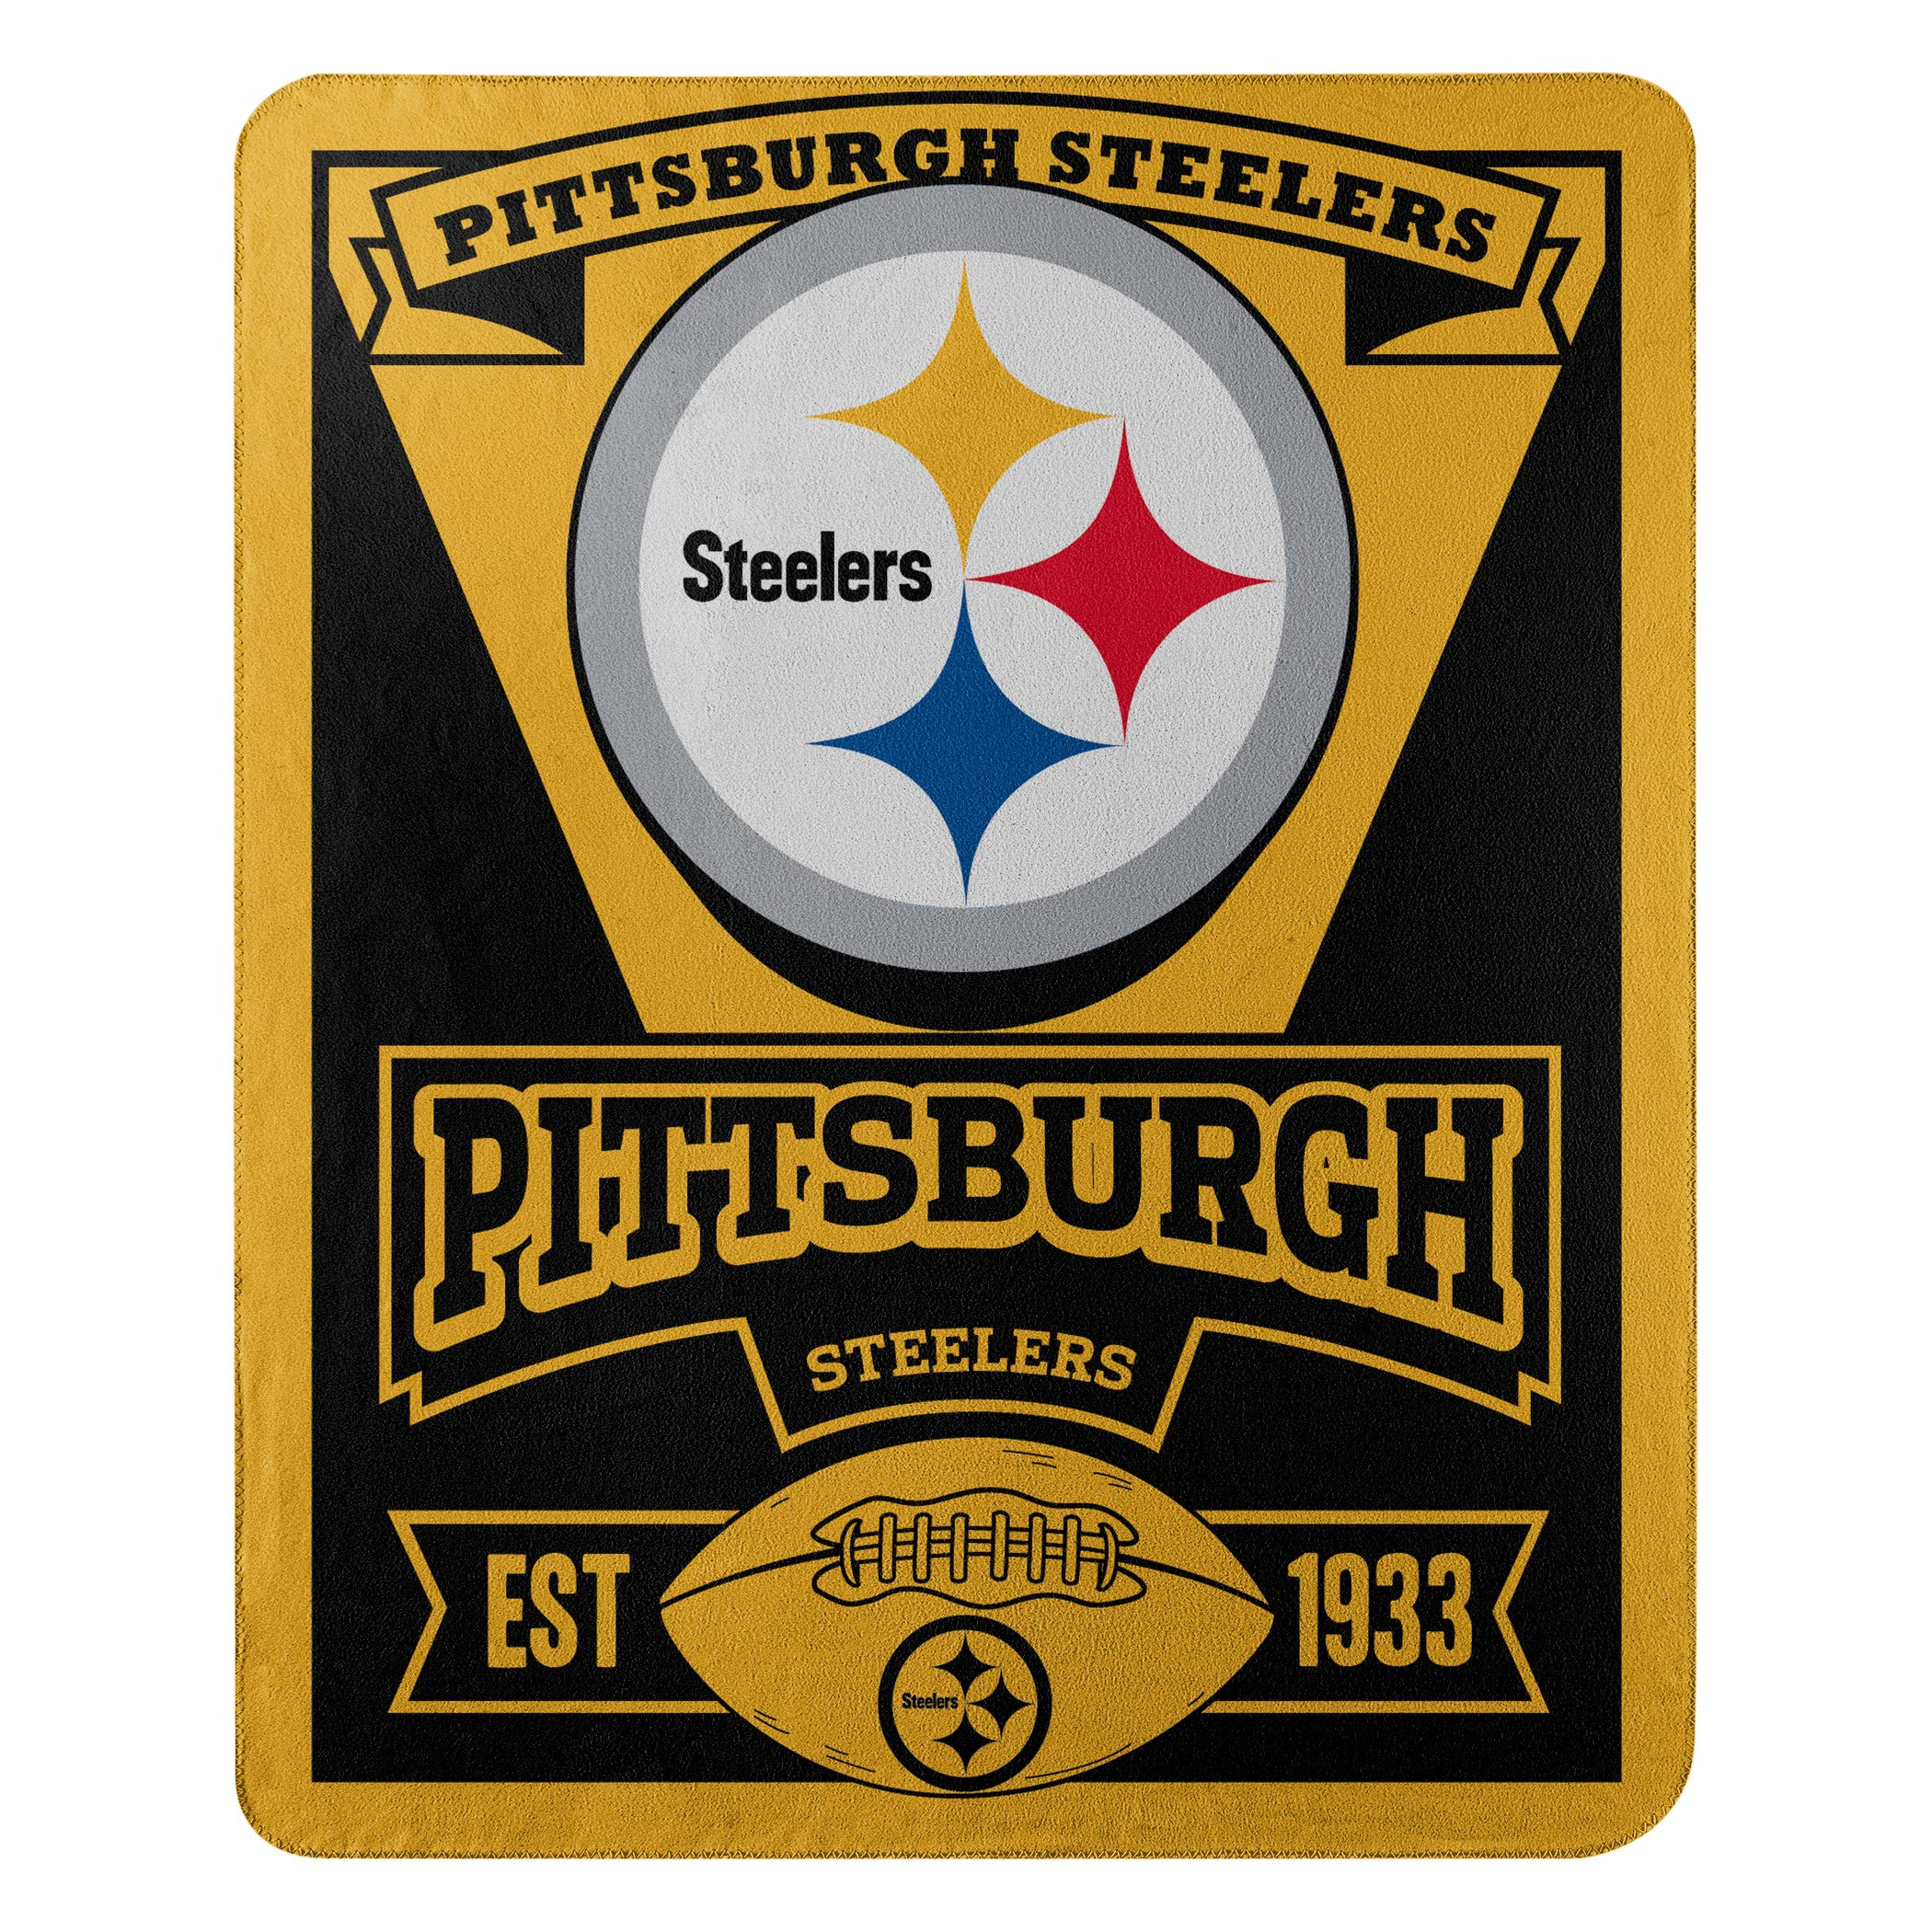 The Northwest Company Officially Licensed NFL Pittsburgh Steelers Marque Printed Fleece Throw Blanket, 50'' x 60'', Multi Color by The Northwest Company